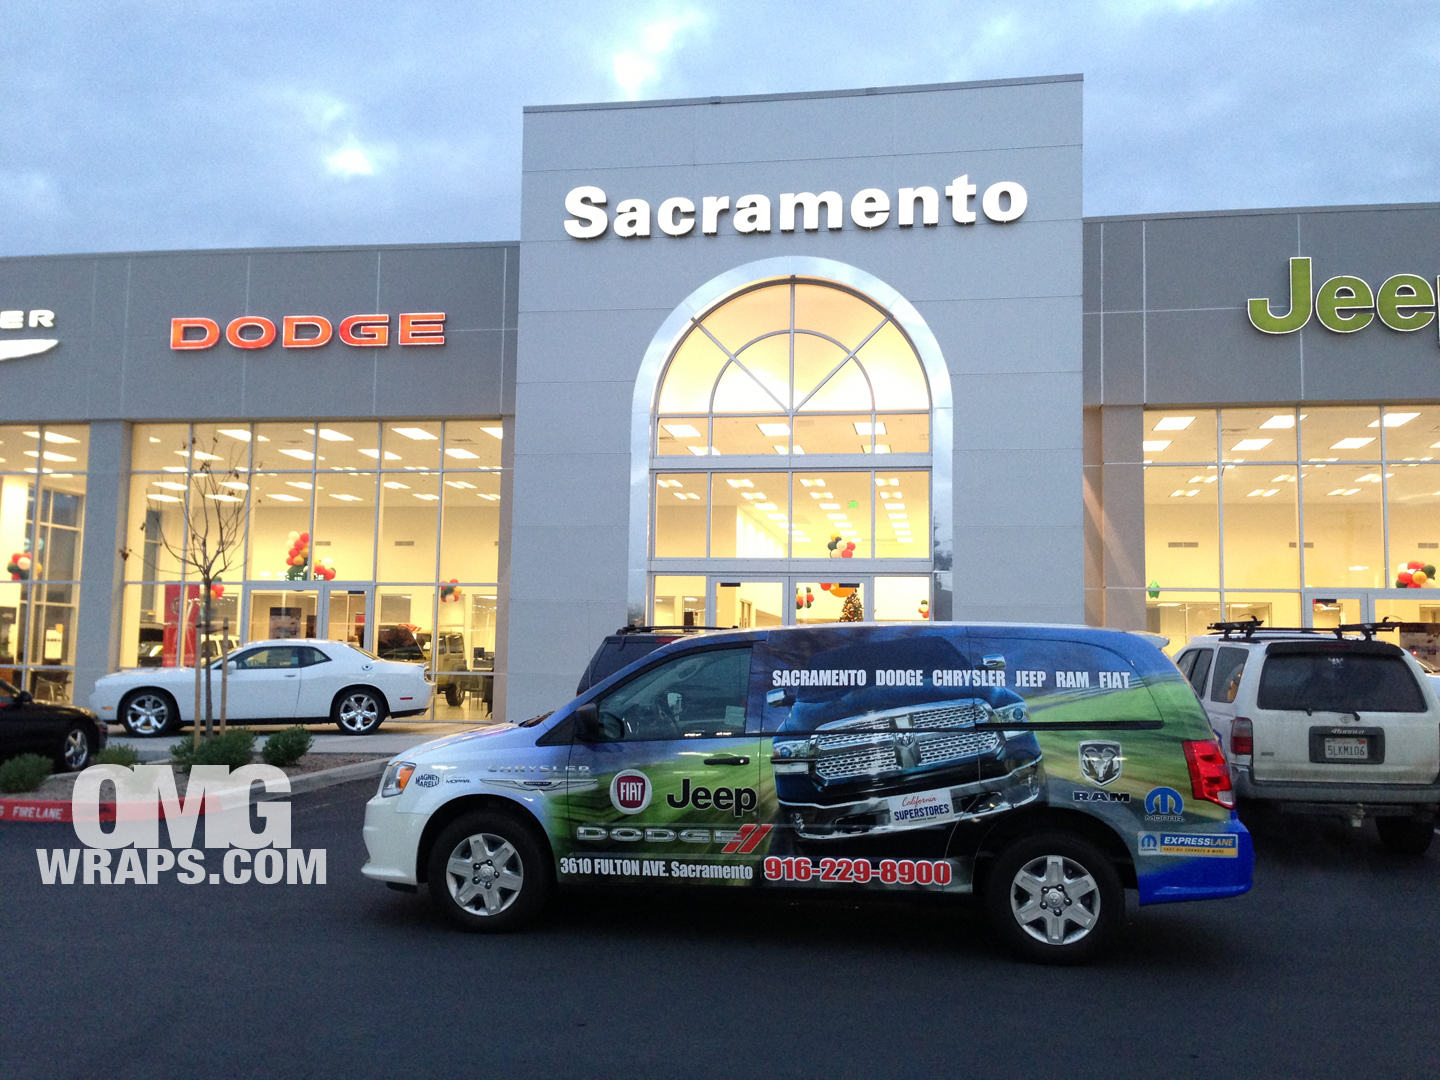 Great Sacramento Chrysler, Dodge, Jeep, Ram U0026 Fiat Get The OMG Car Wrap Treatment  | Car Wraps In San Francisco, Sacramento And Los Angeles